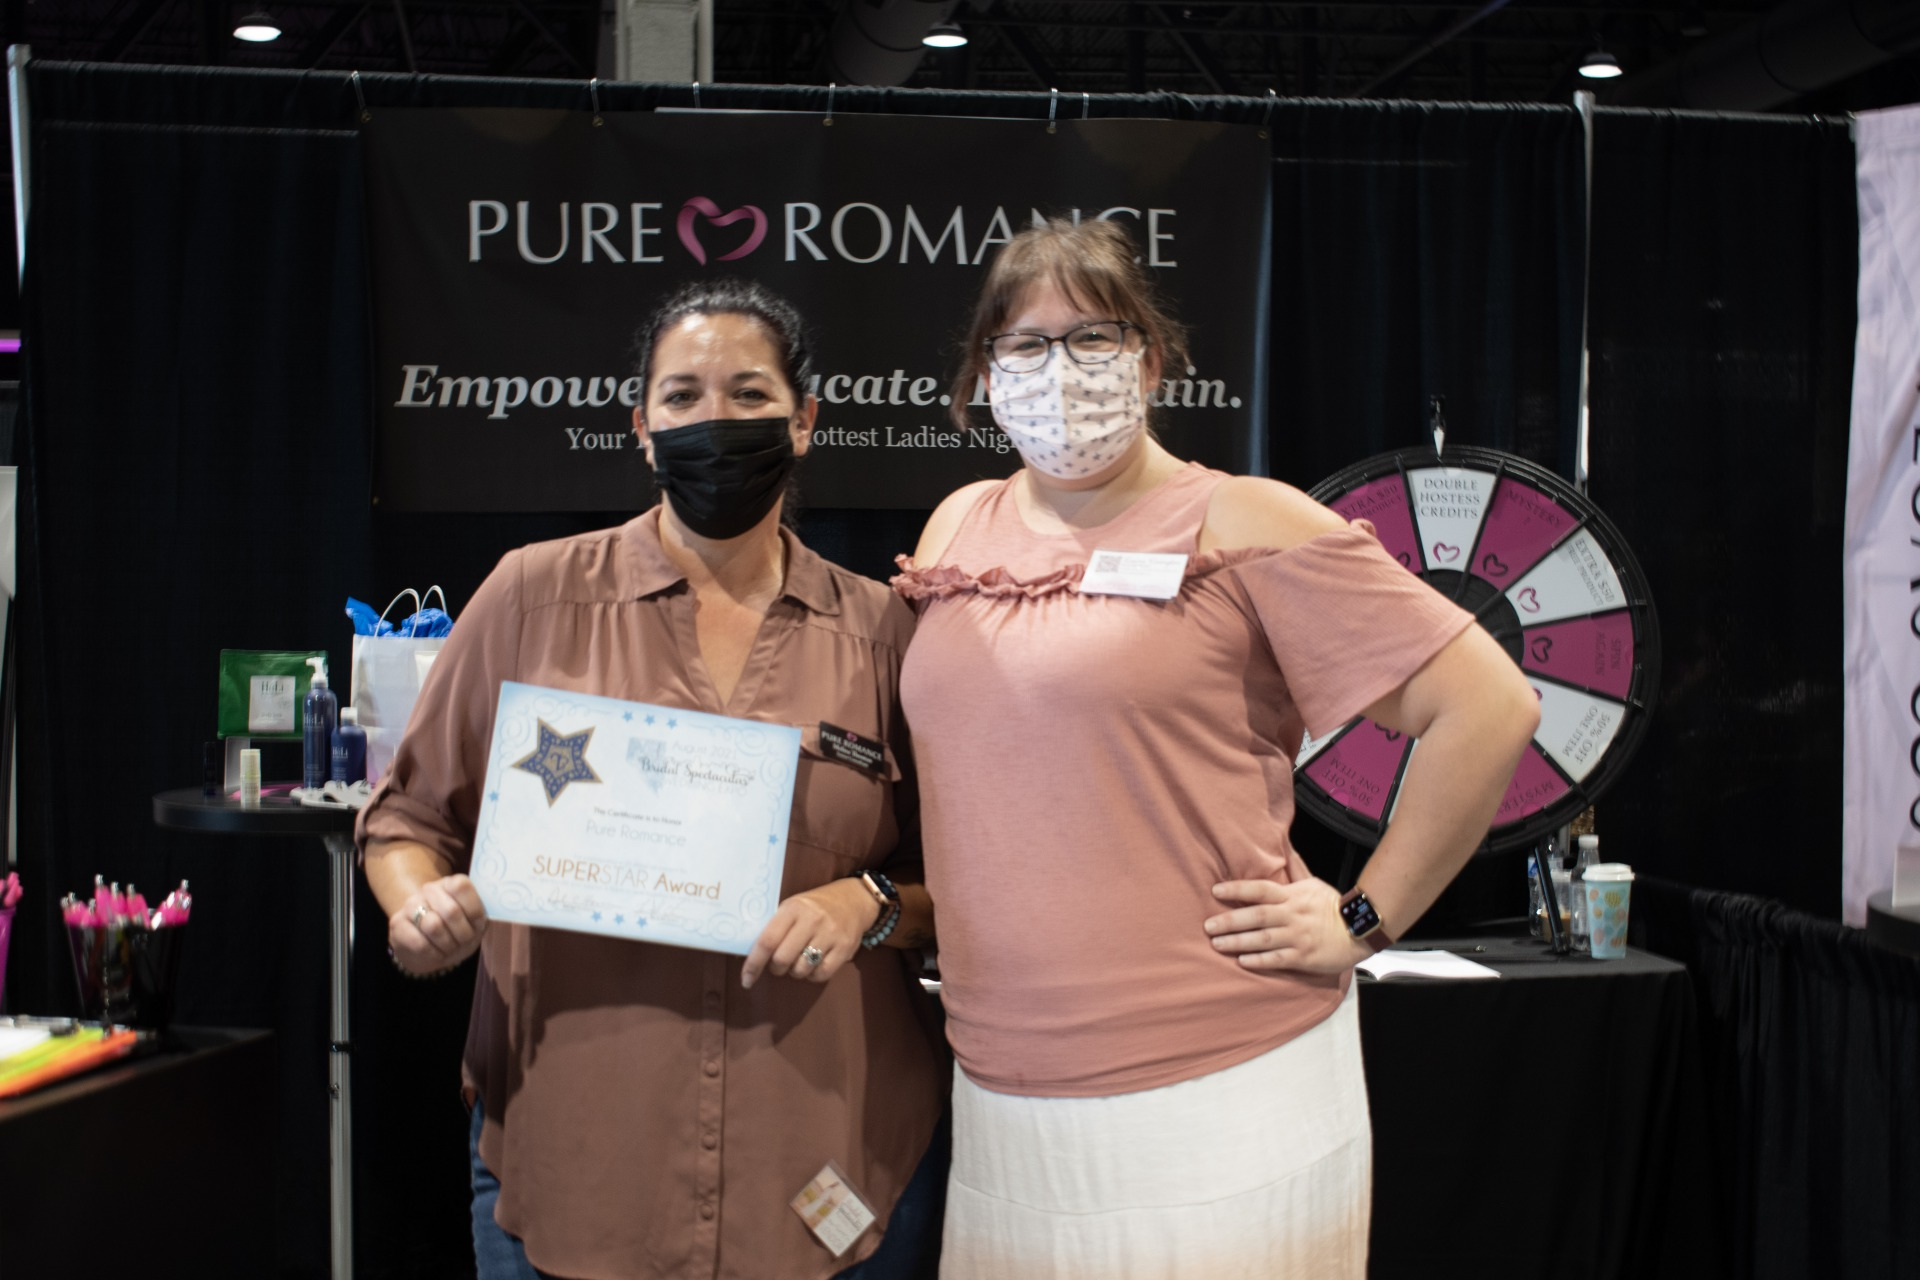 Pure Romance by Melisa at the Bridal Spectacular Las Vegas